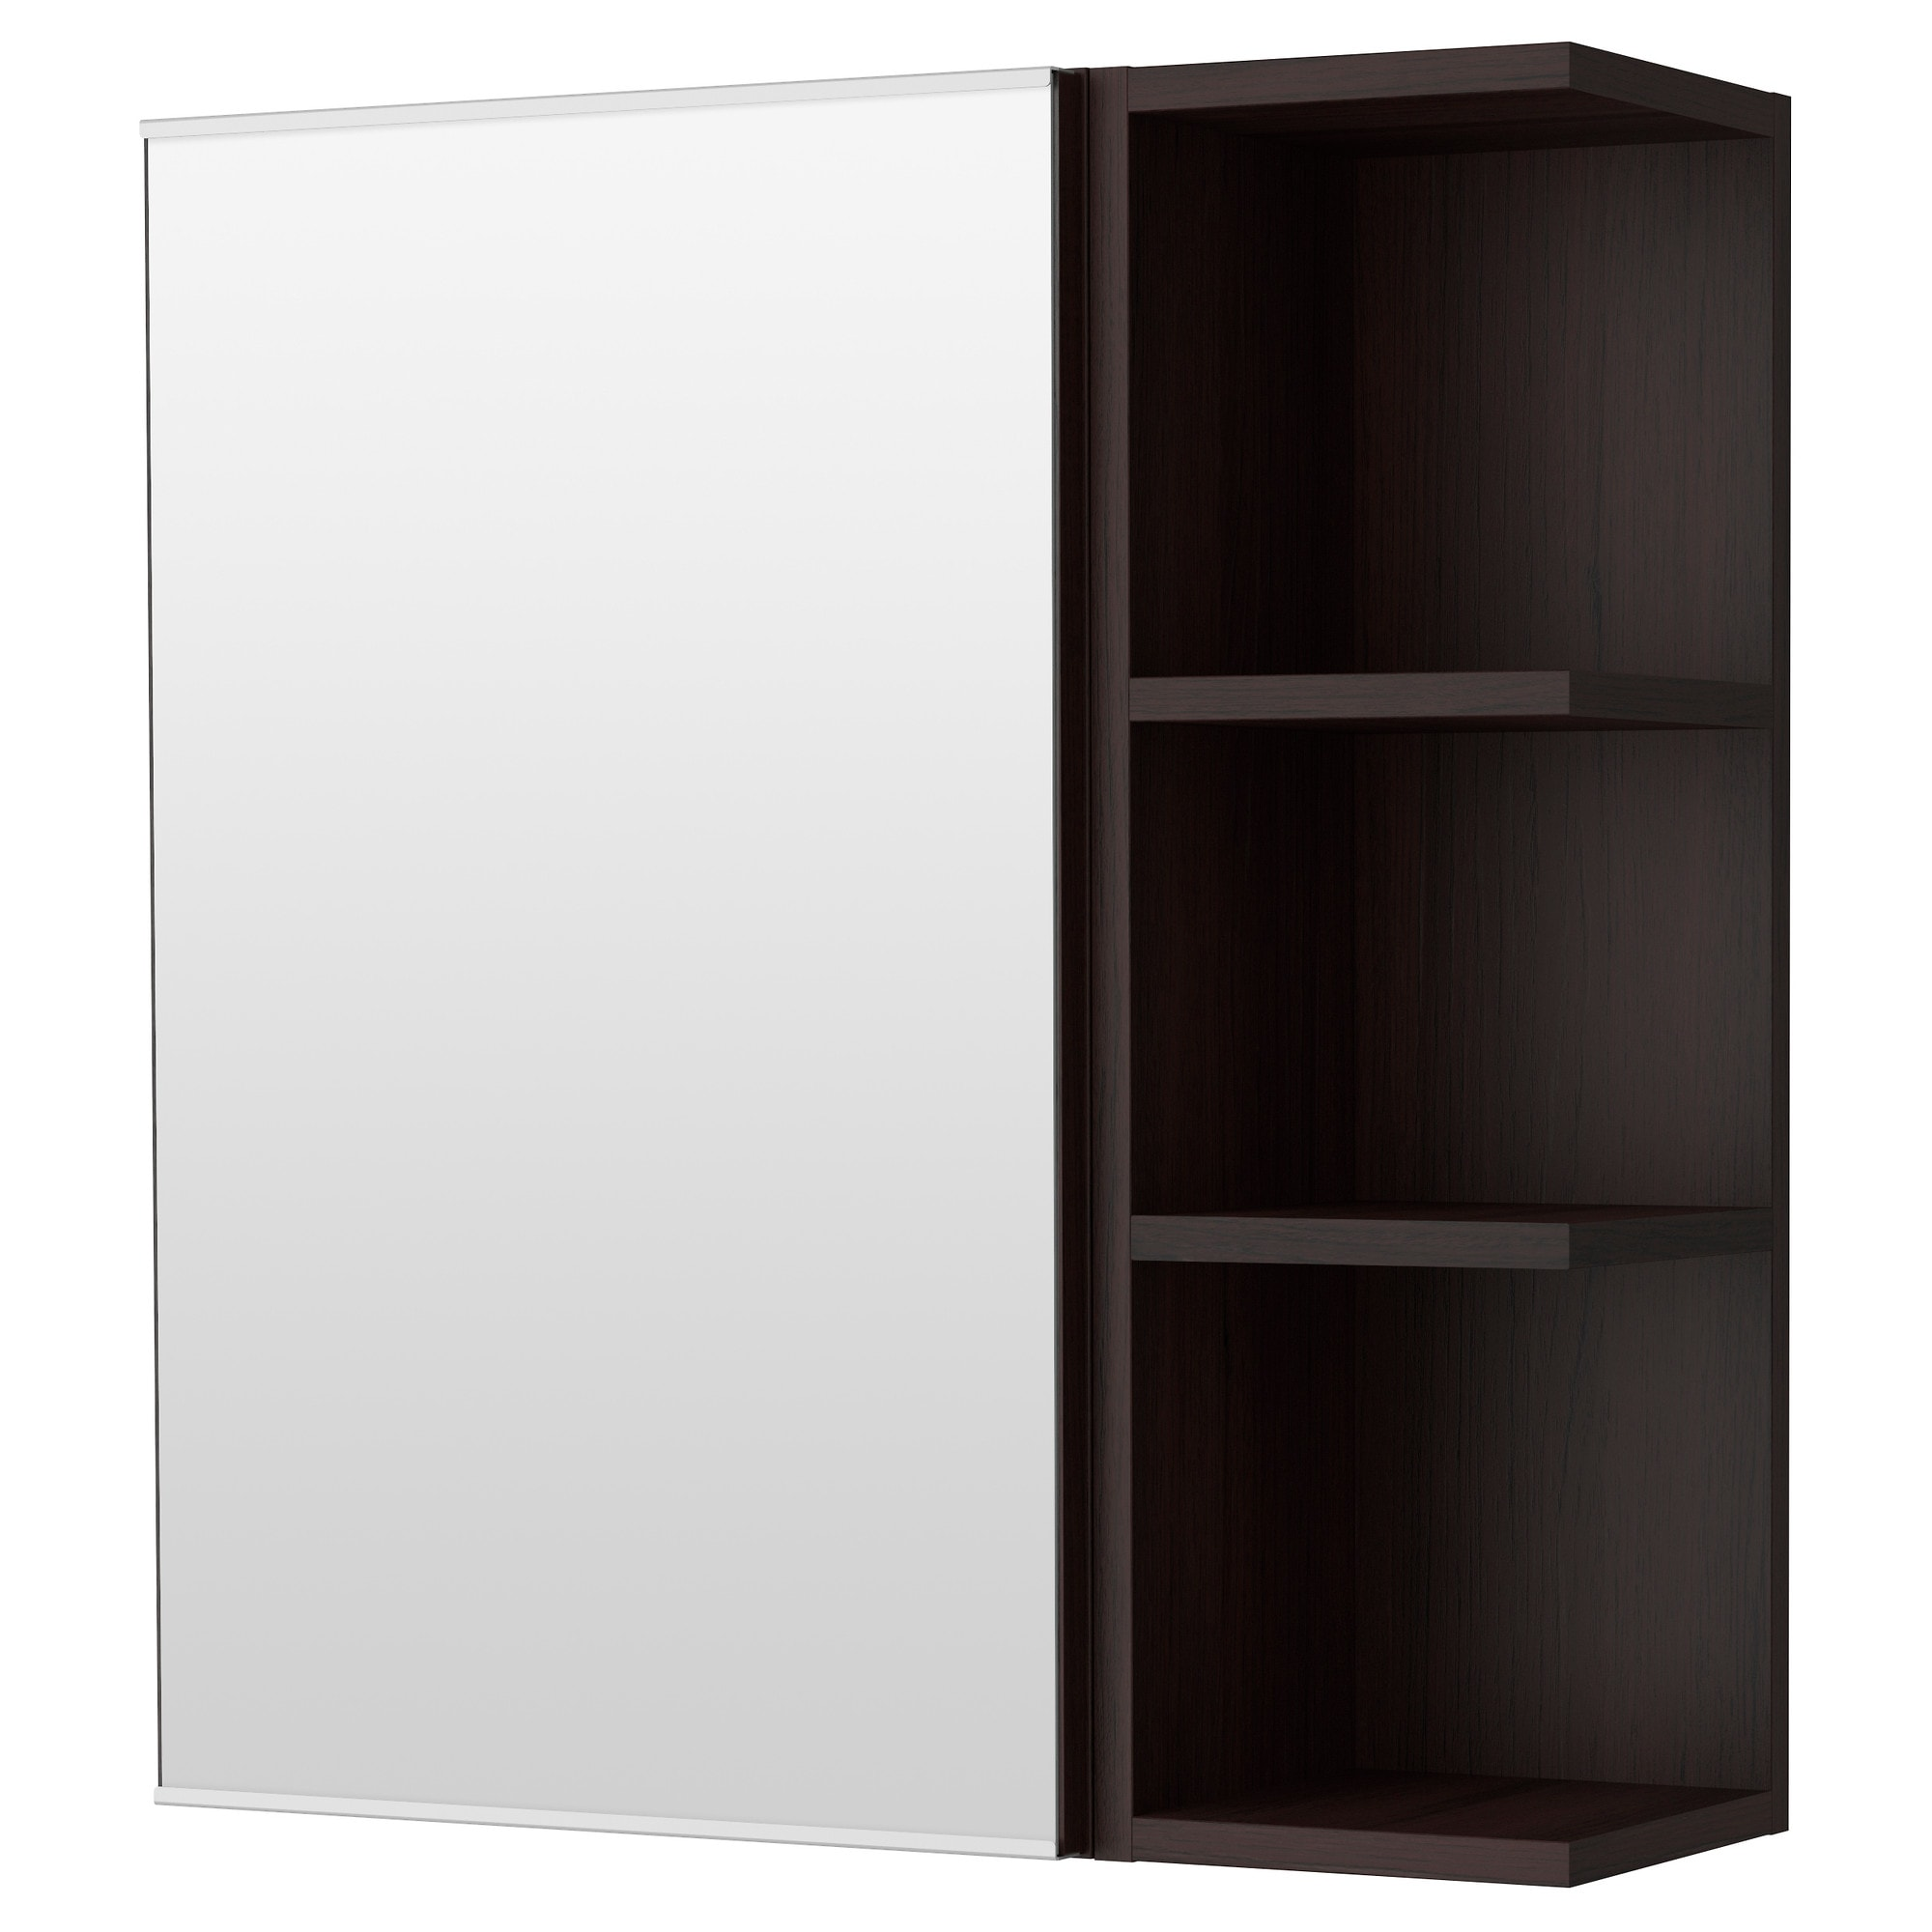 LILLNGEN Mirror Cabinet 1 Door End Unit